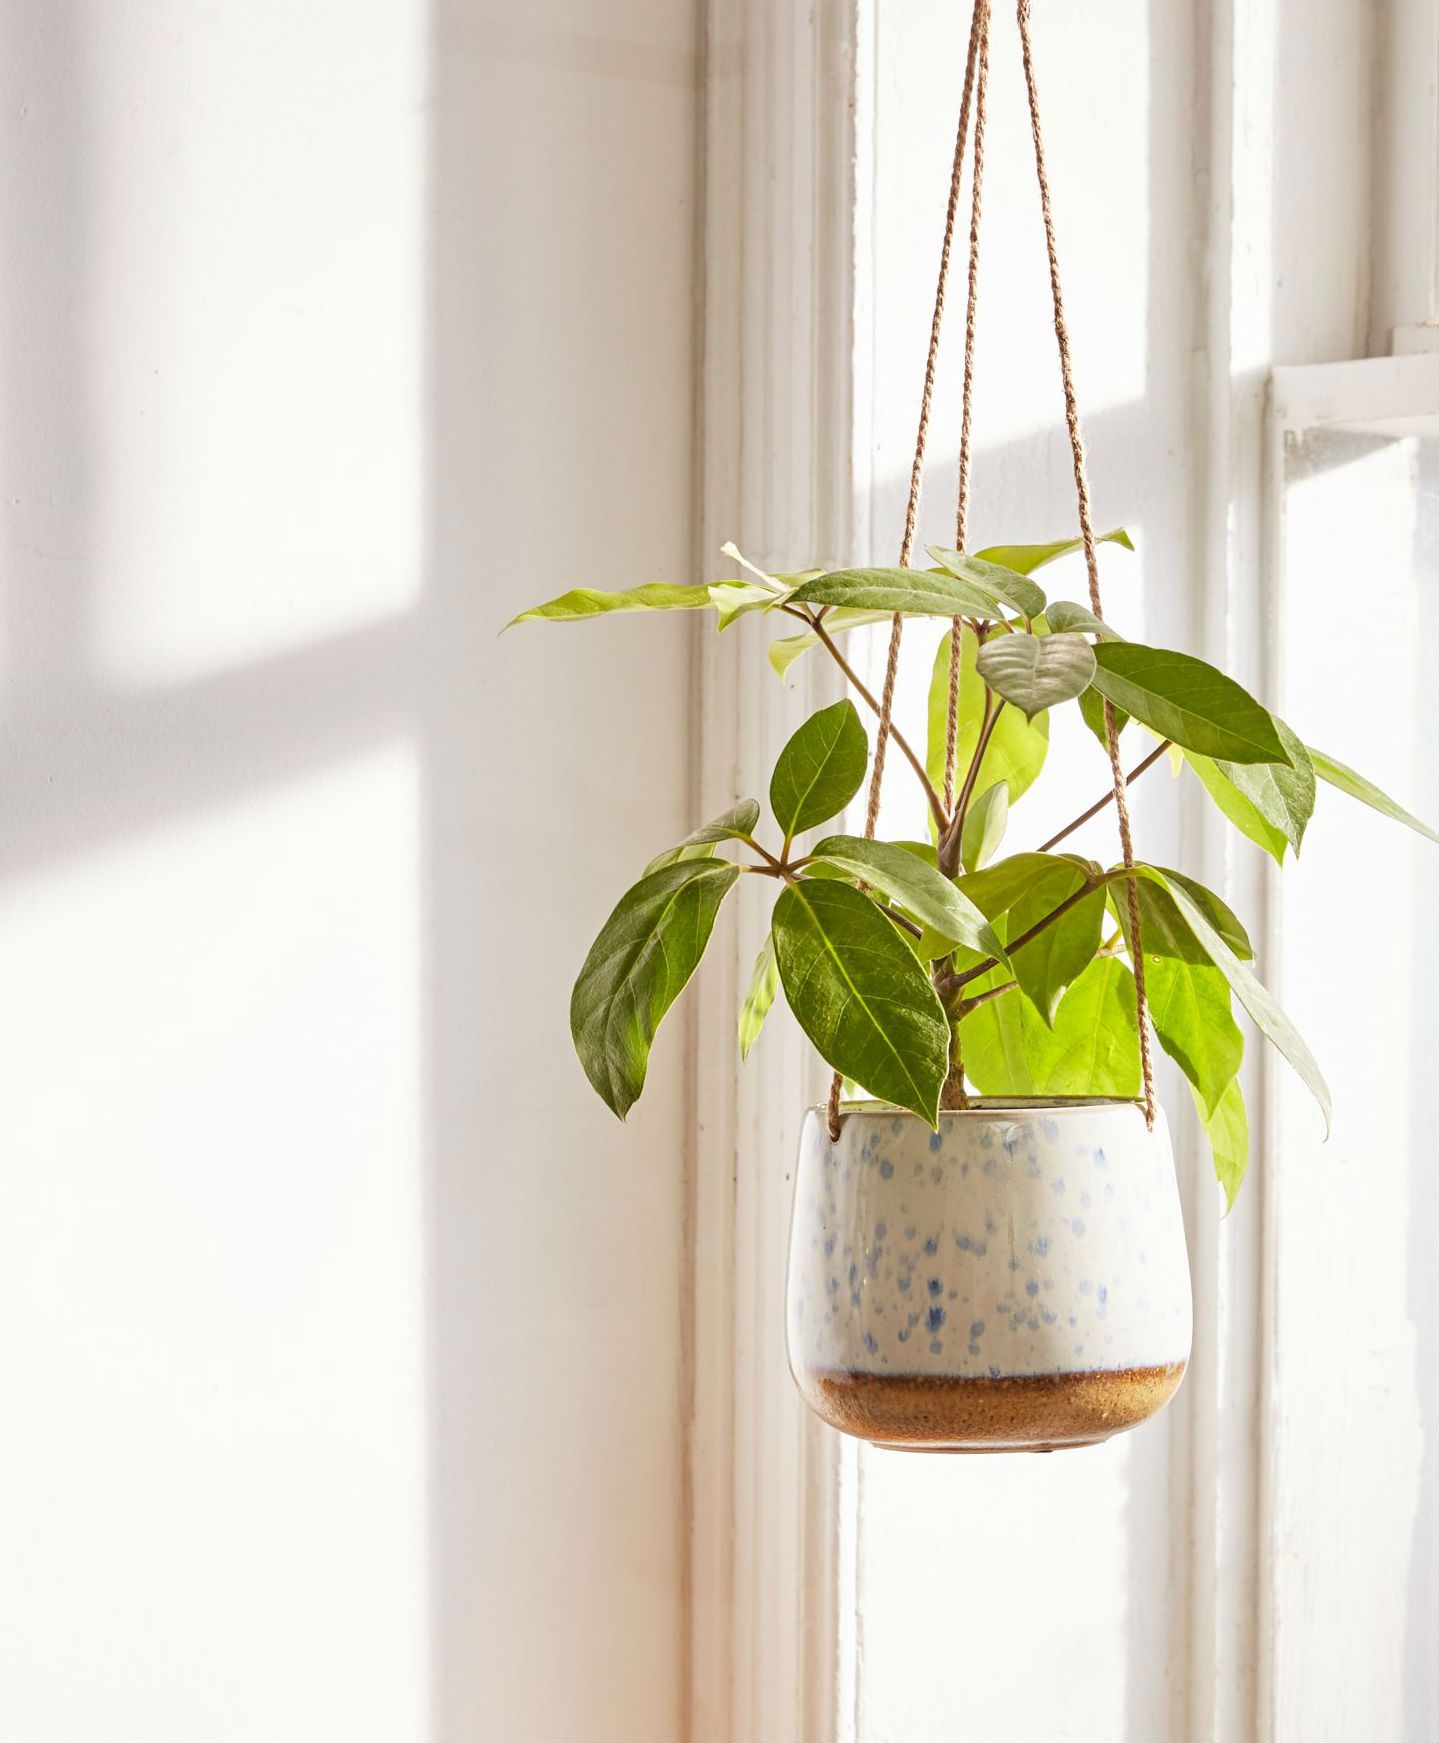 Speckled Ceramic Hanging Planter This Cute Little Planter From Urban